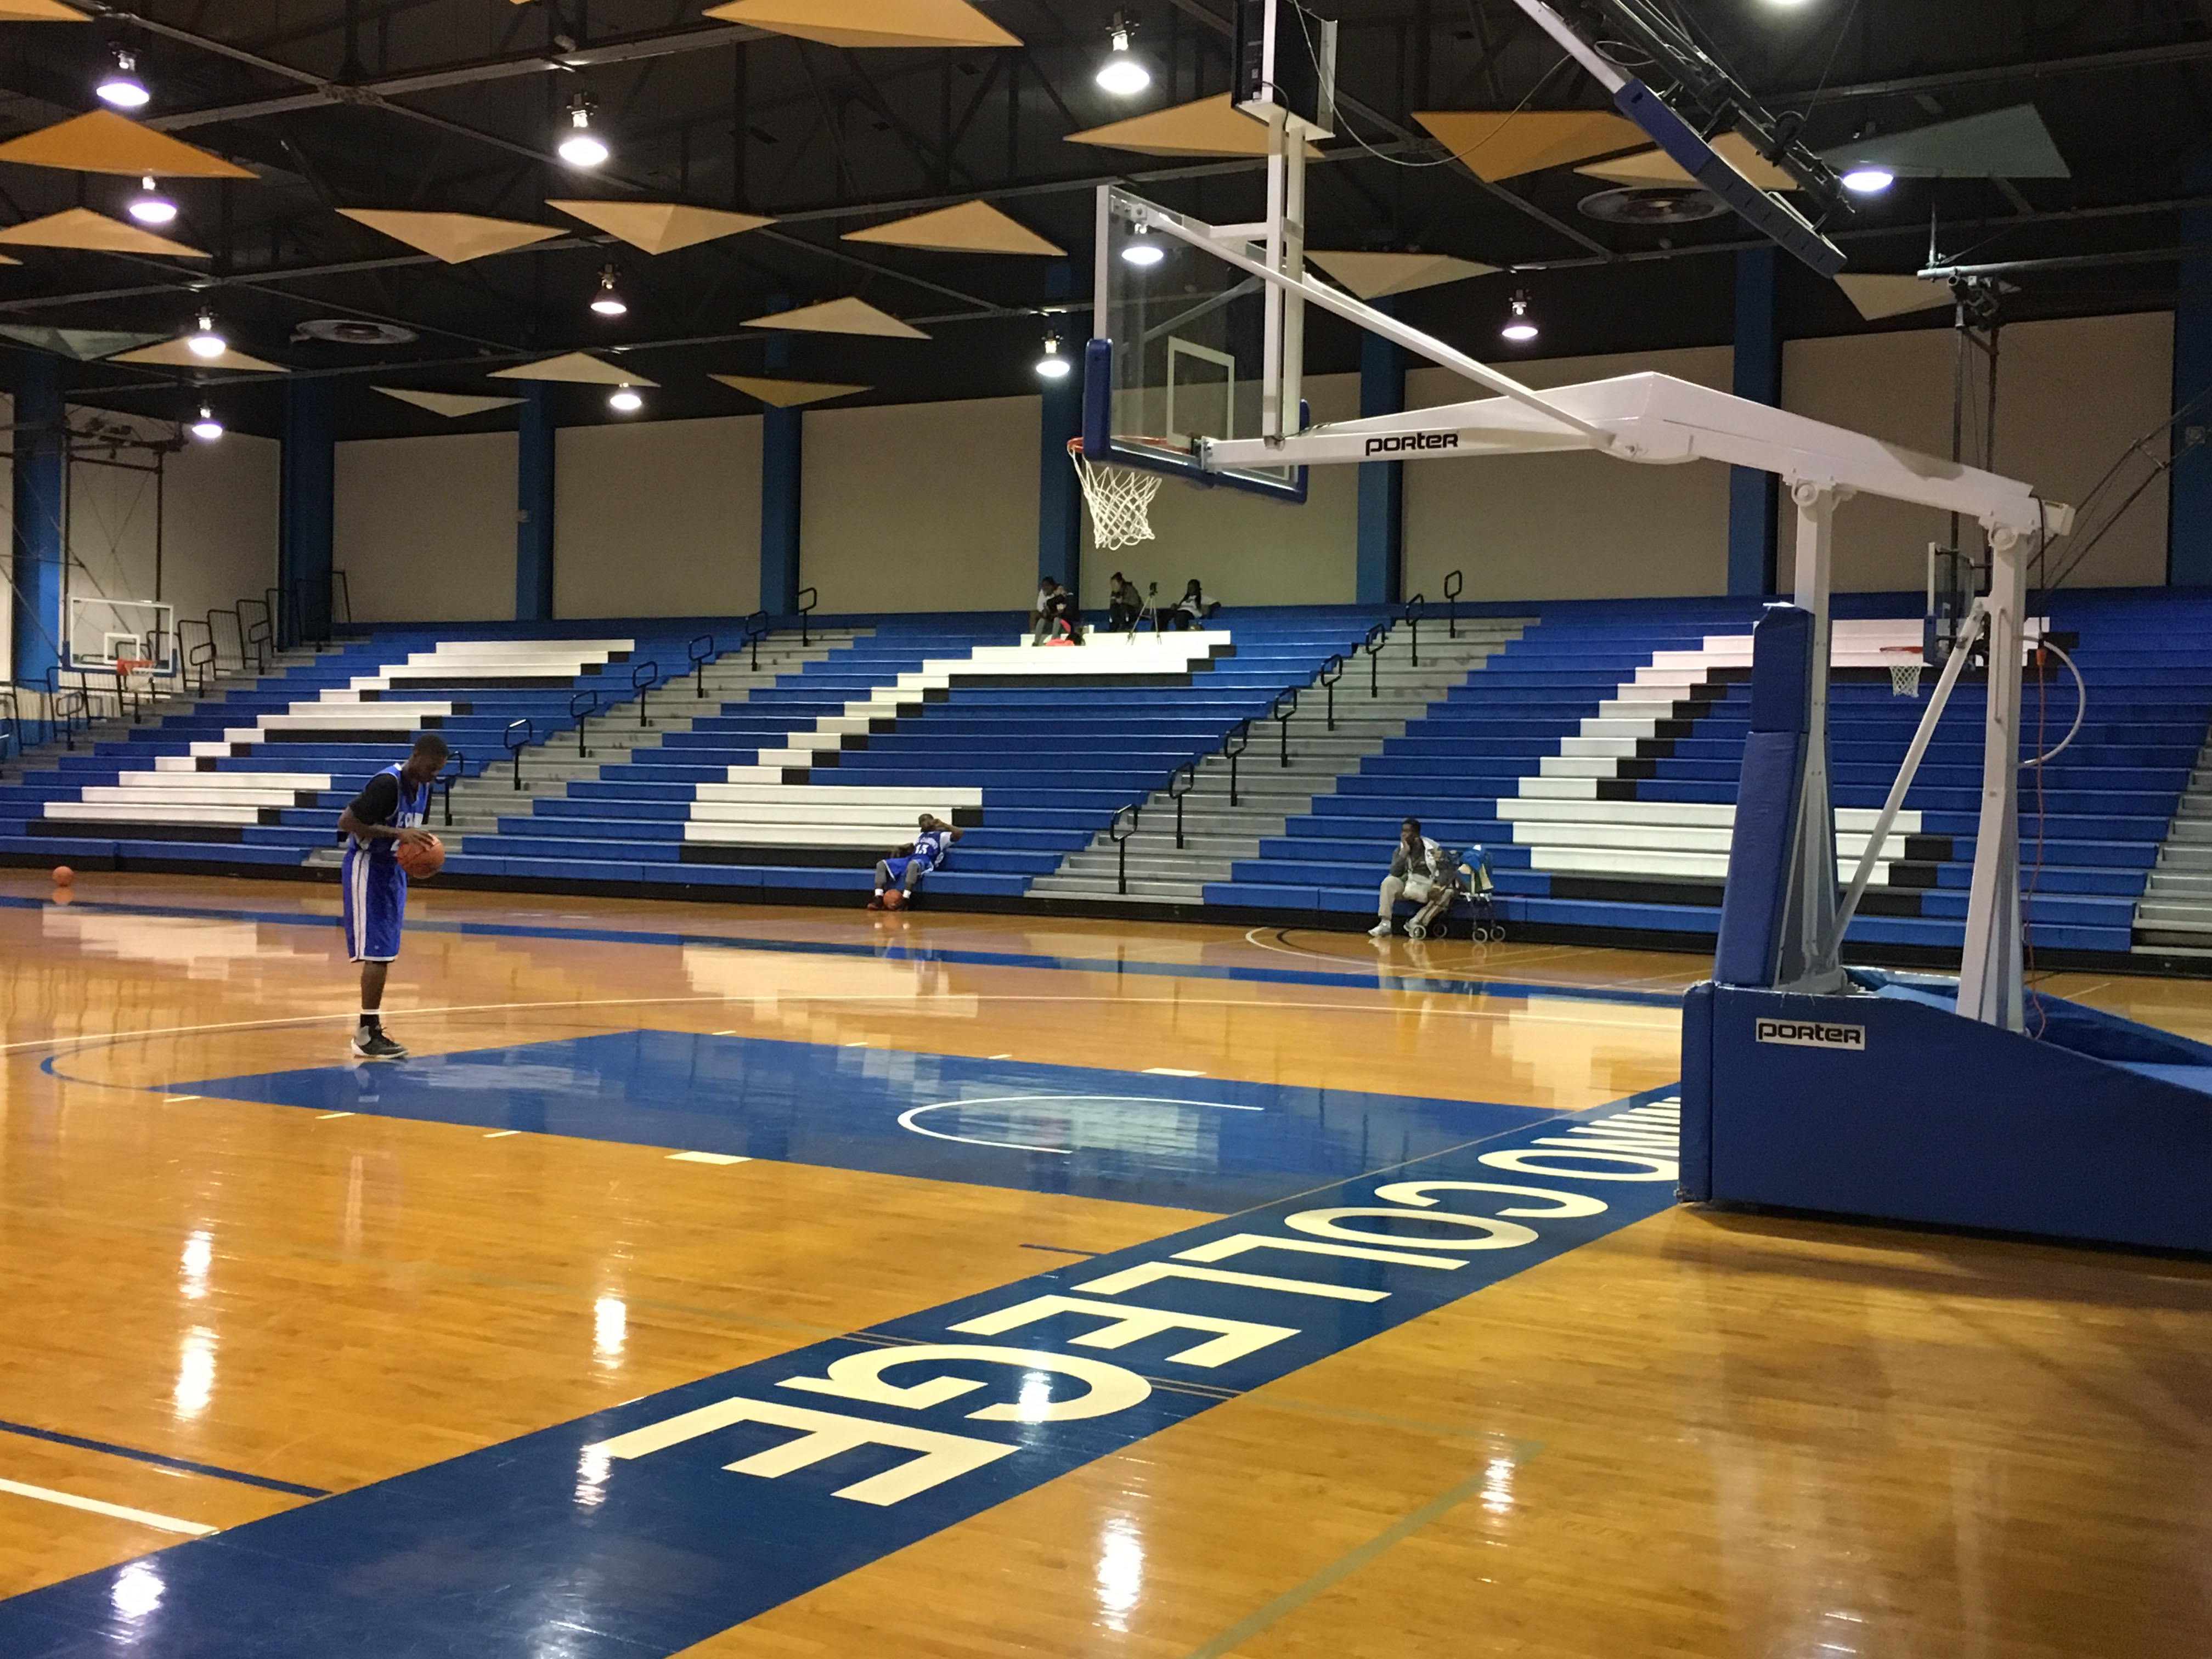 A men's basketball player works on free throws before a recent scrimmage in the North gym at El Camino. Photo credit: Eric Ramos